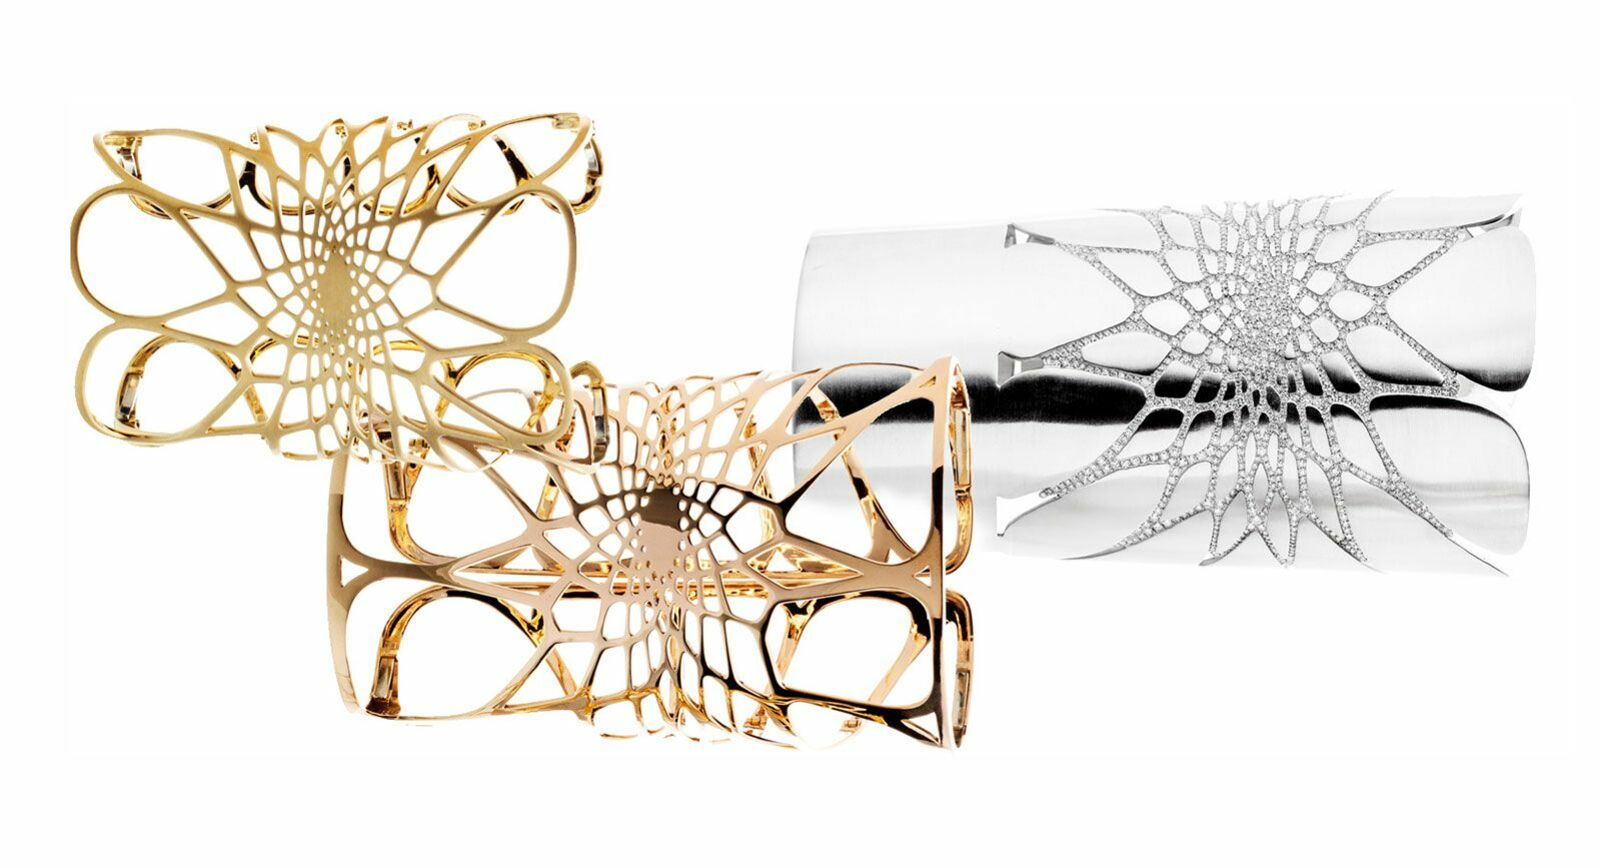 AW Mouzannar Creates New Silene Collection in Collaboration with Zaha Hadid